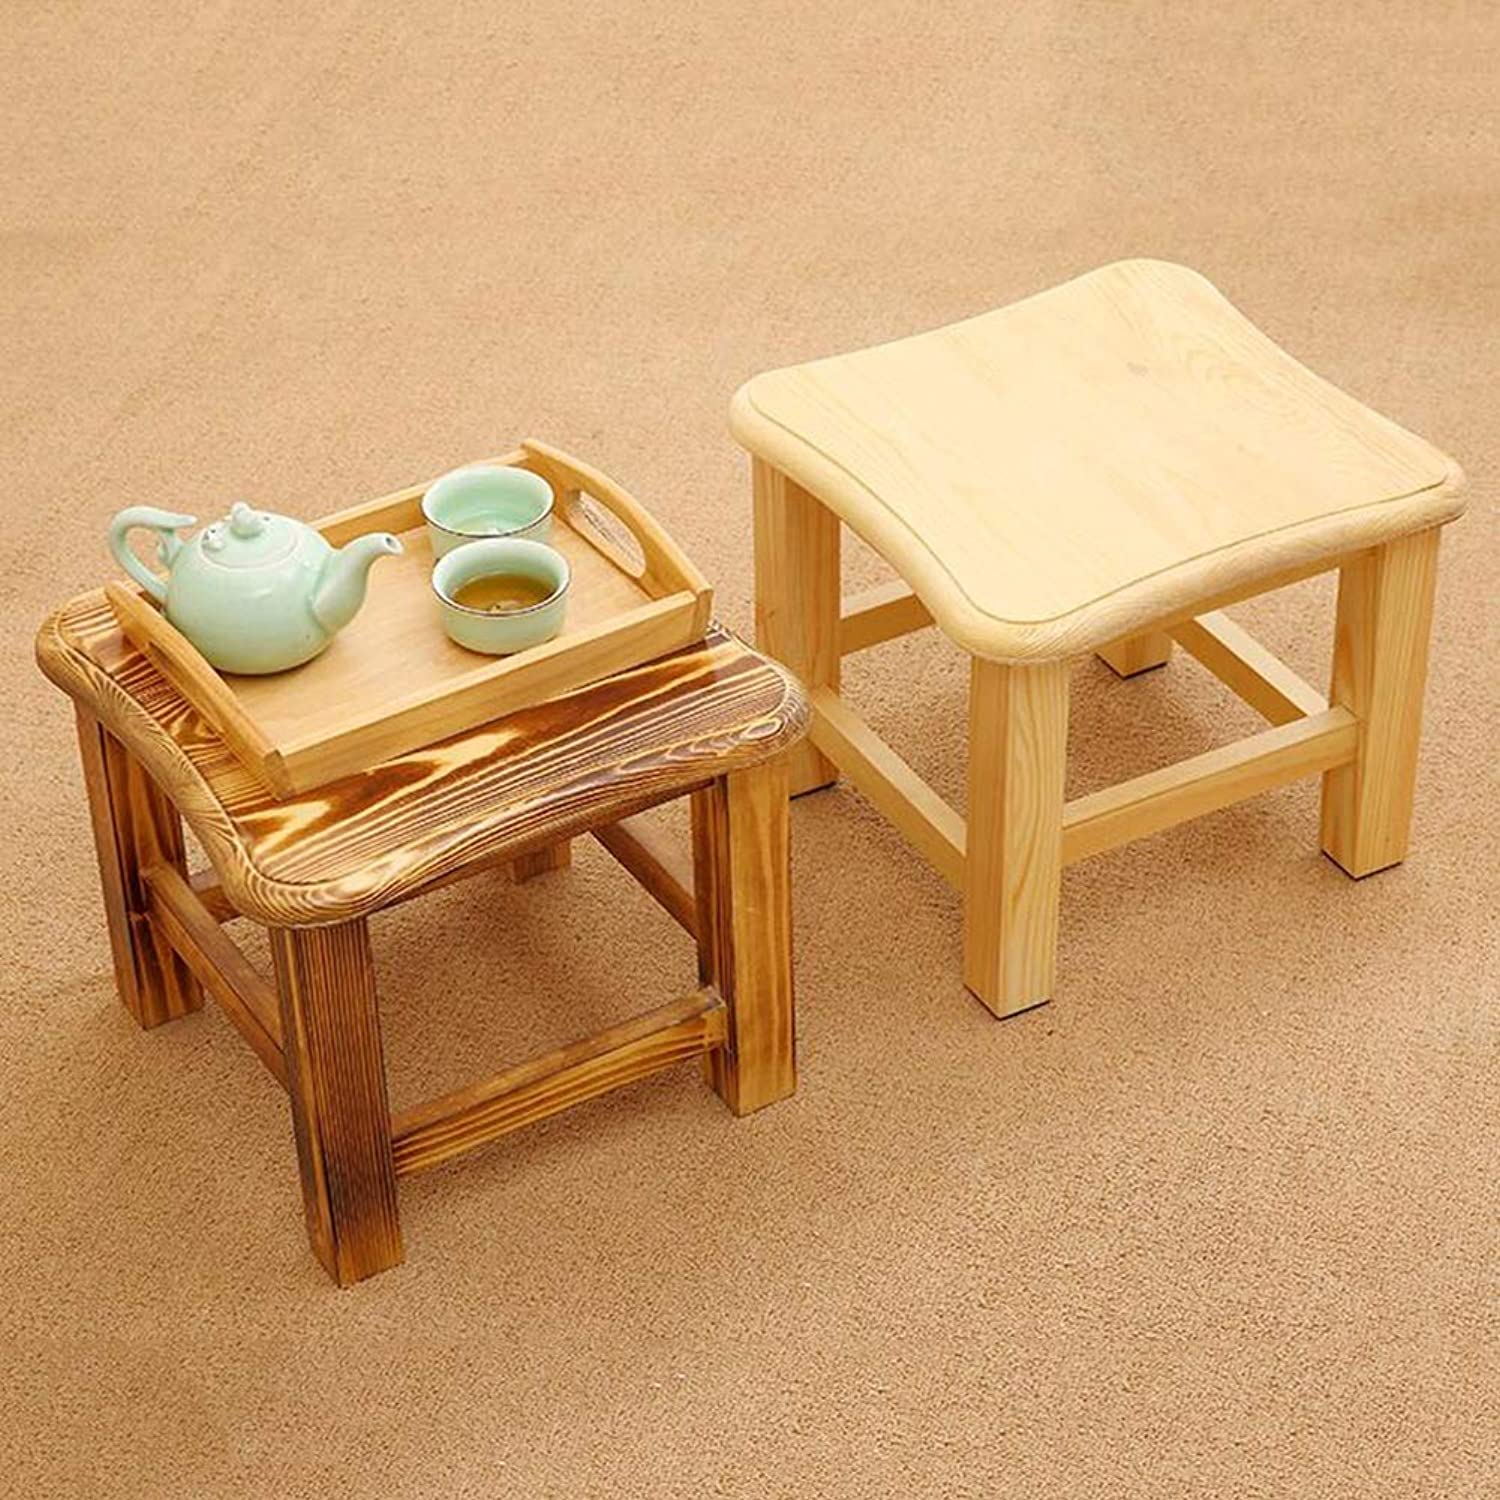 GBXX Small Furniture AntiSlip Stool Footstool Work Stool Shower Stool Step Stool Solid Wood Square Short Small Bench NonSlip Mat Distressed Carbonization Multifunction Household Creative